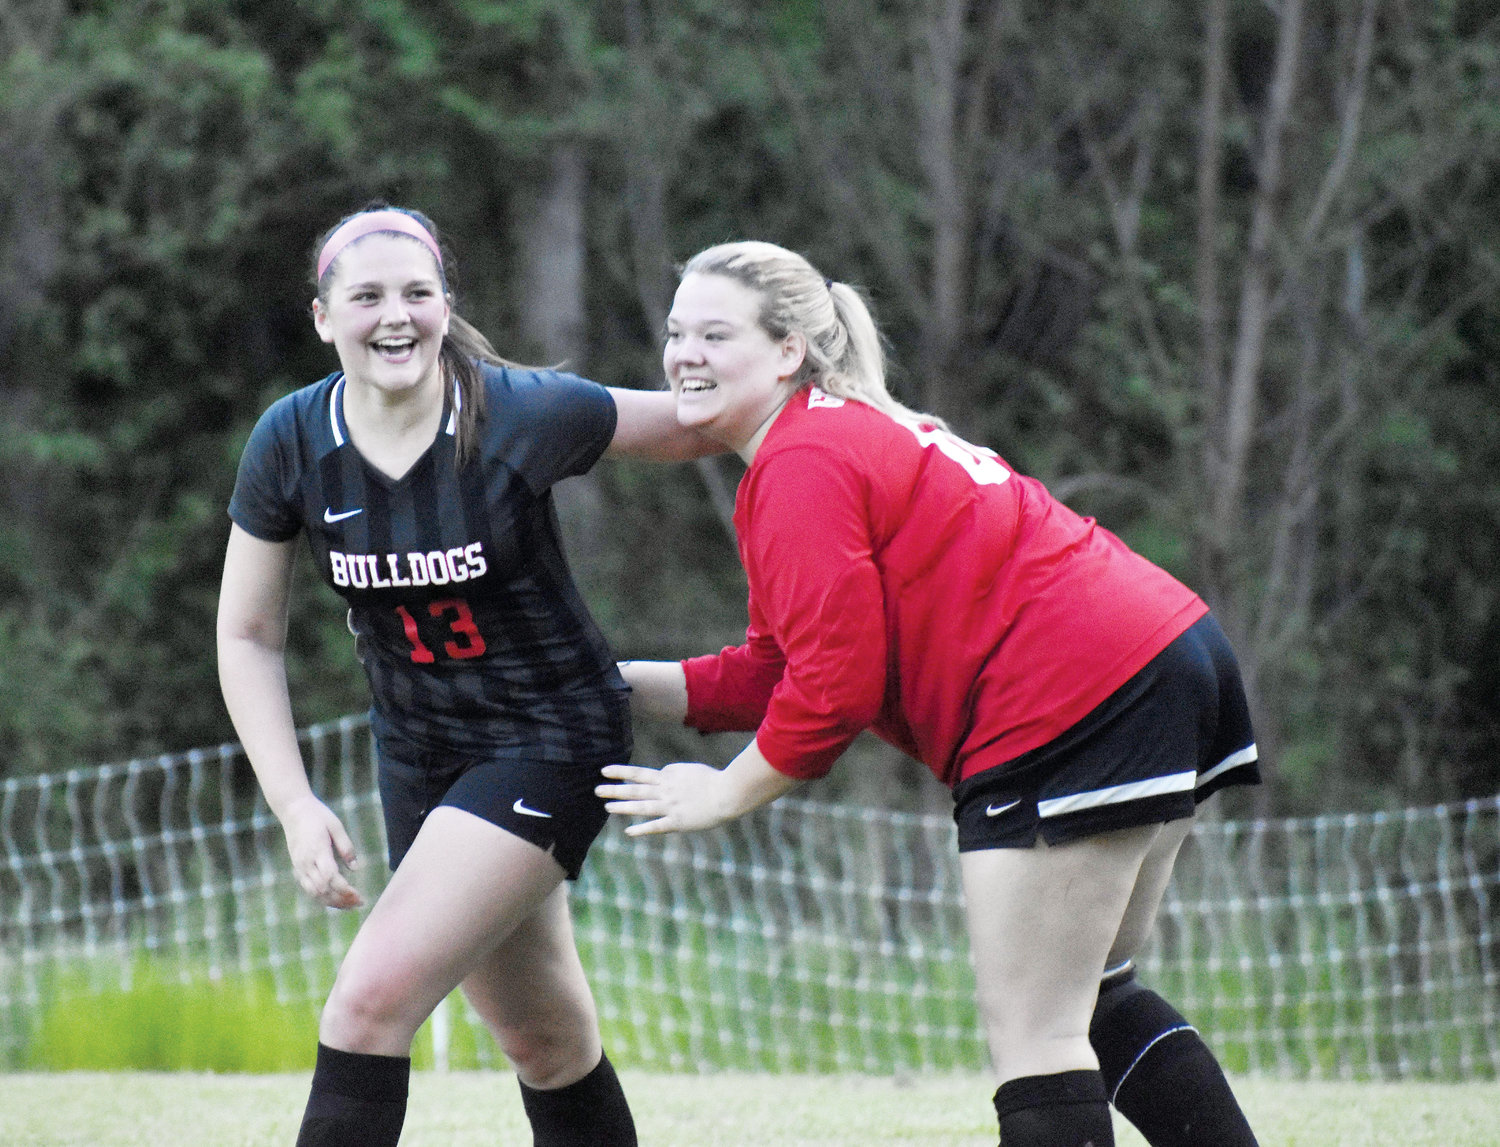 Kelly Snow | The Courier-Times.Roxboro Community School's Madison Dunkley (left) and Carly Grinstead are all smiles after defeating Voyager Academy, 2-1 in a key game during the season.